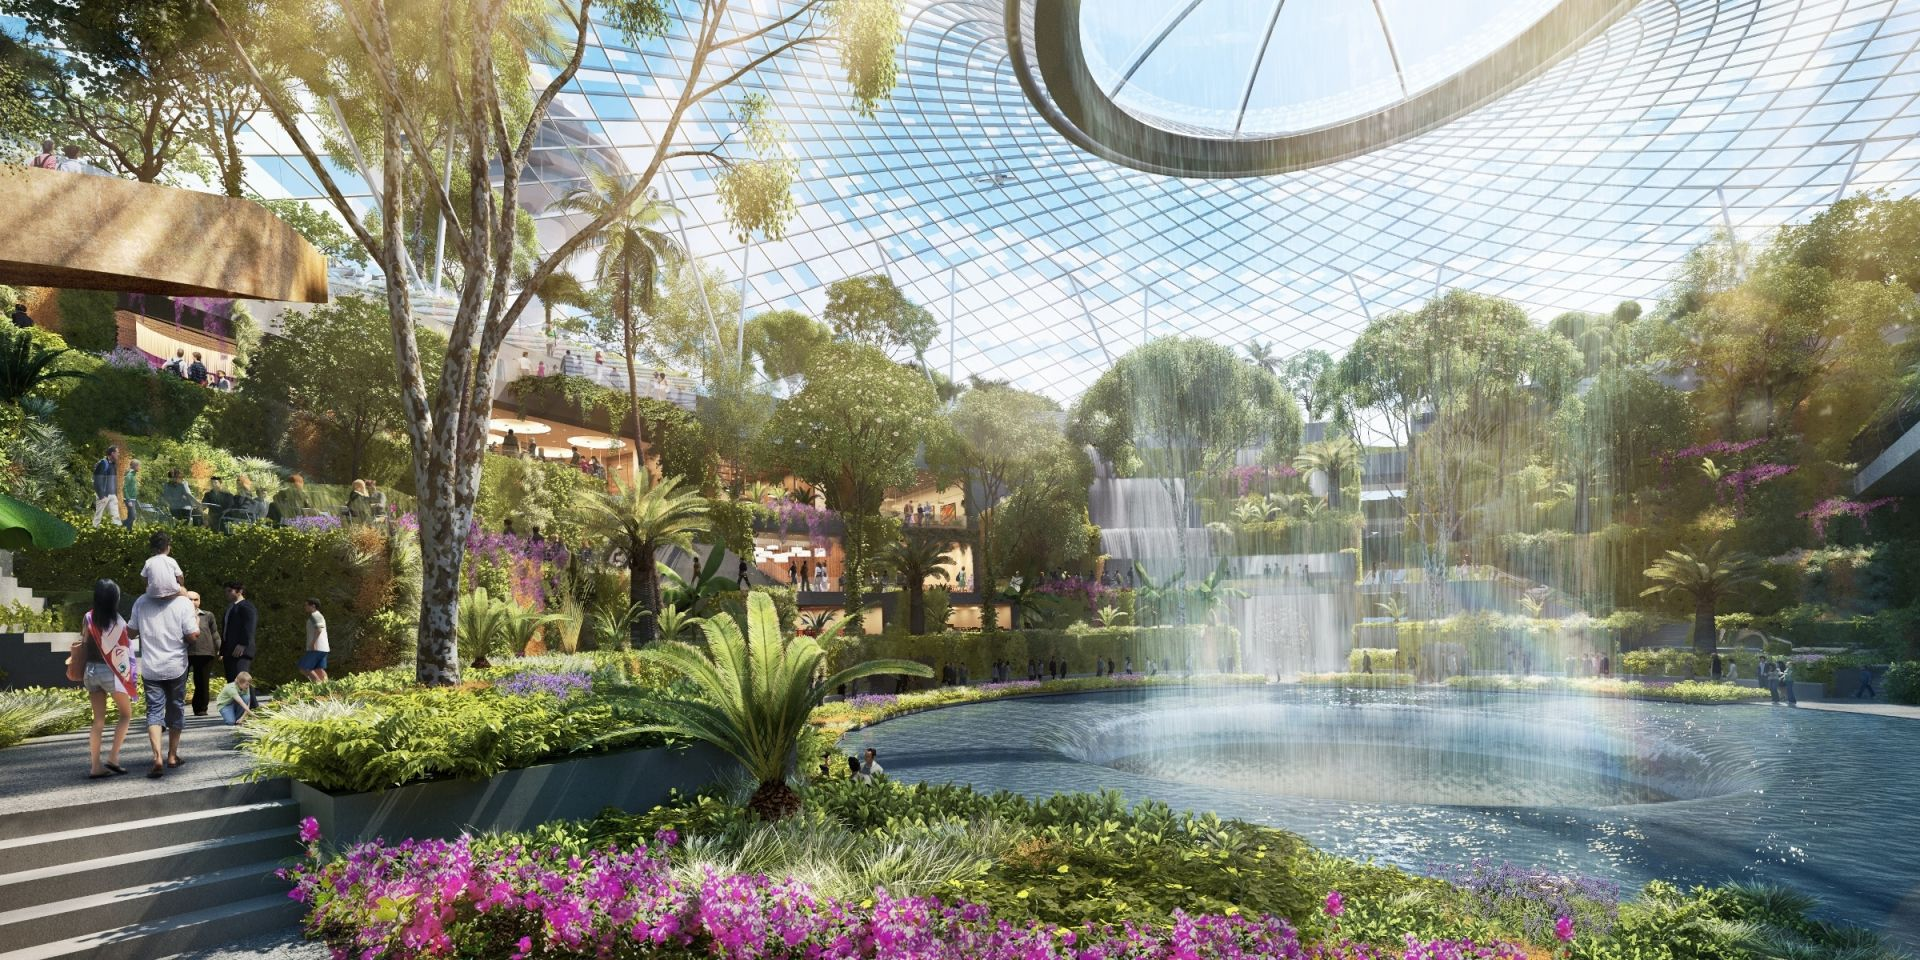 A photo rendering of Singapore's new Changi Airport